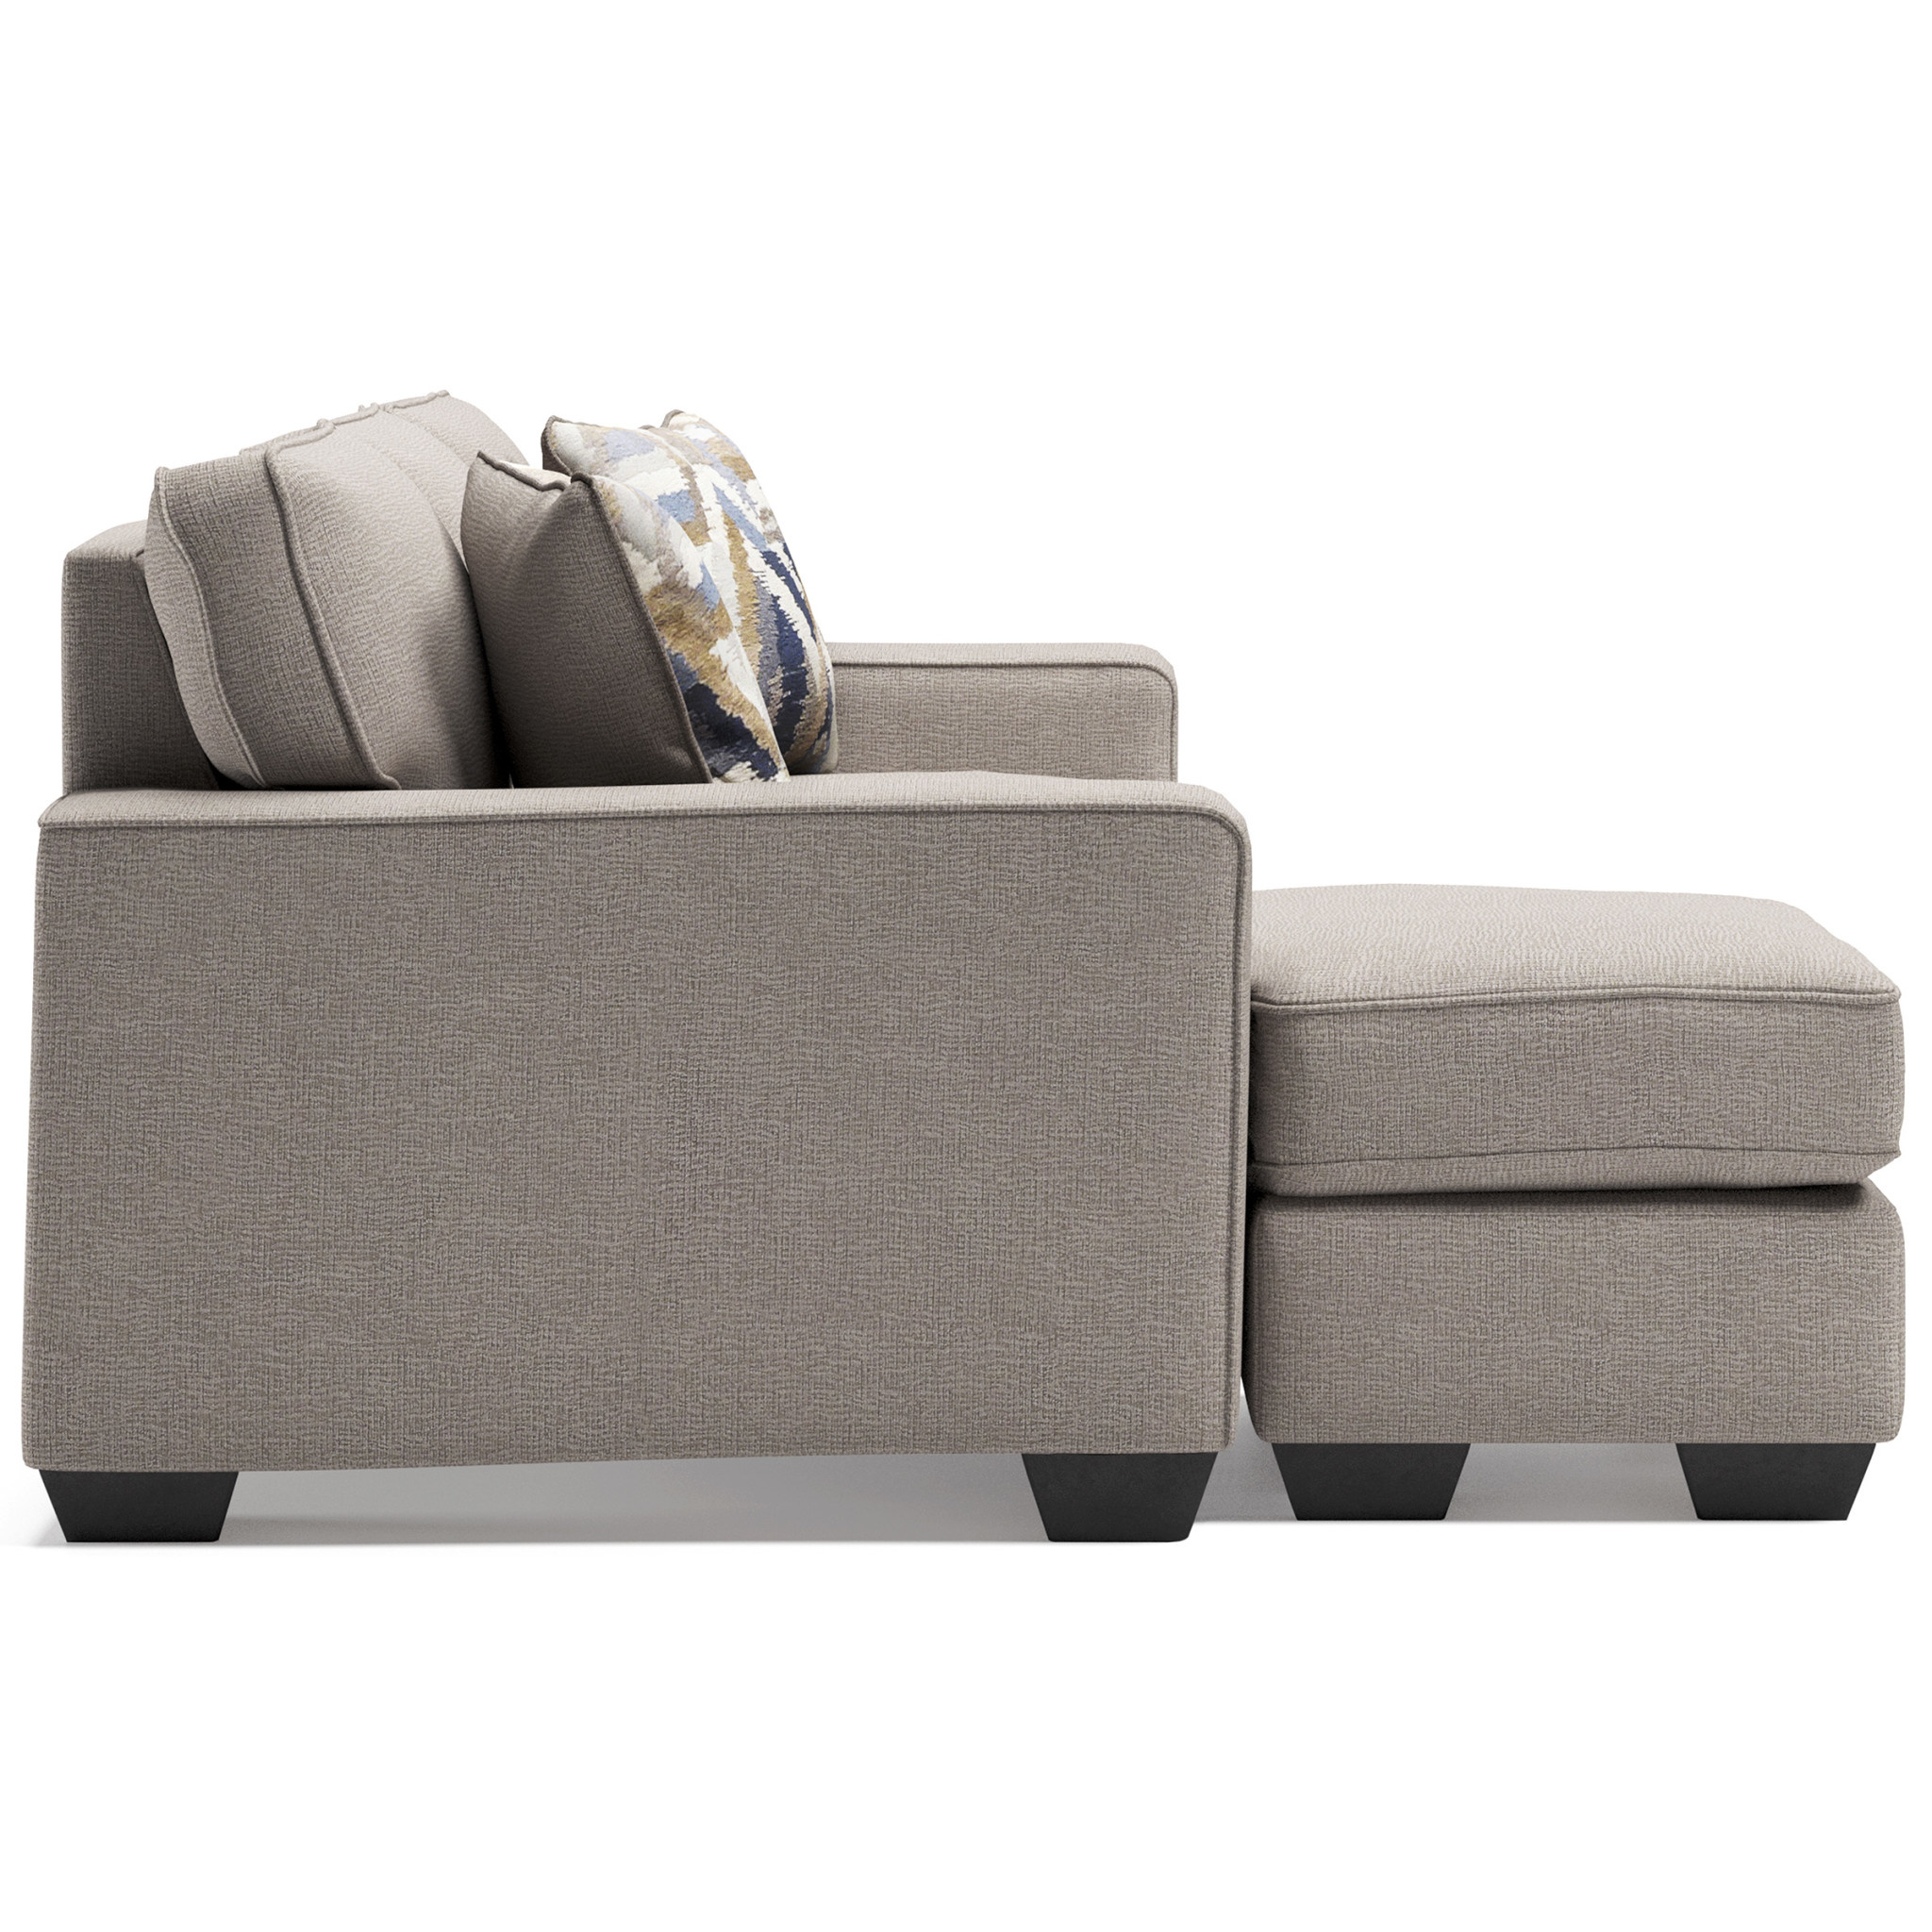 """Benchcraft """"Greaves"""" Reversible Sofa Chaise- Stone Color 5510418"""